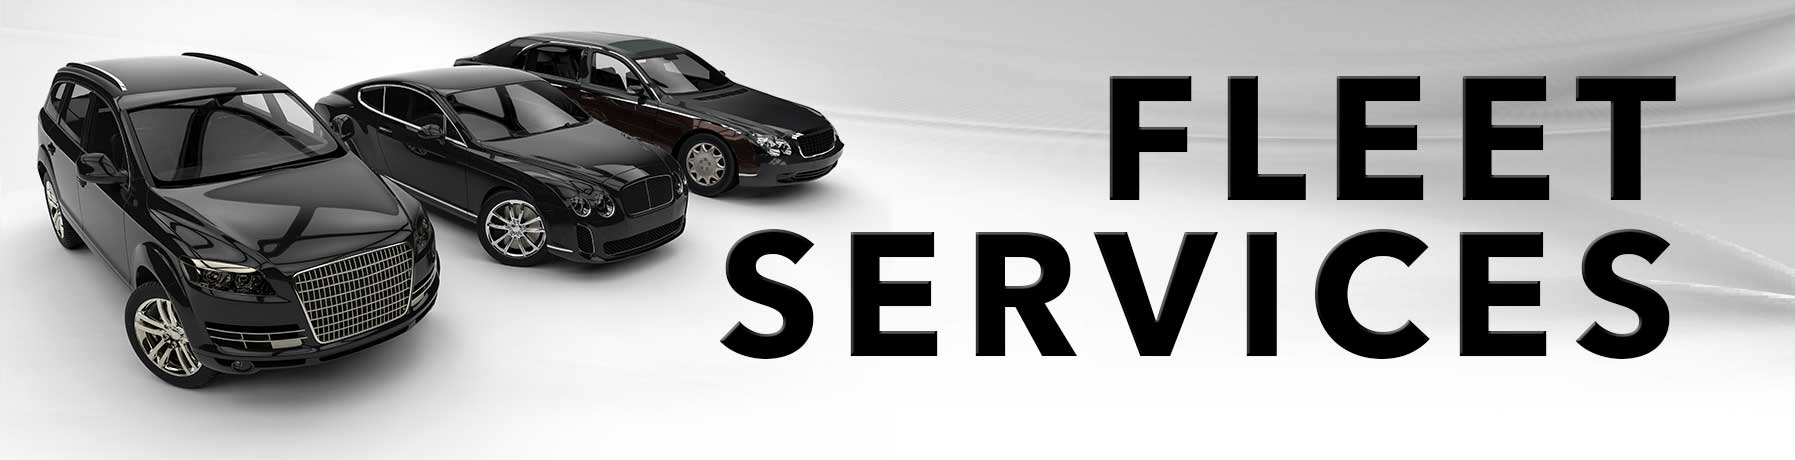 Fleet Service banner image with picture of three fleet vehicles